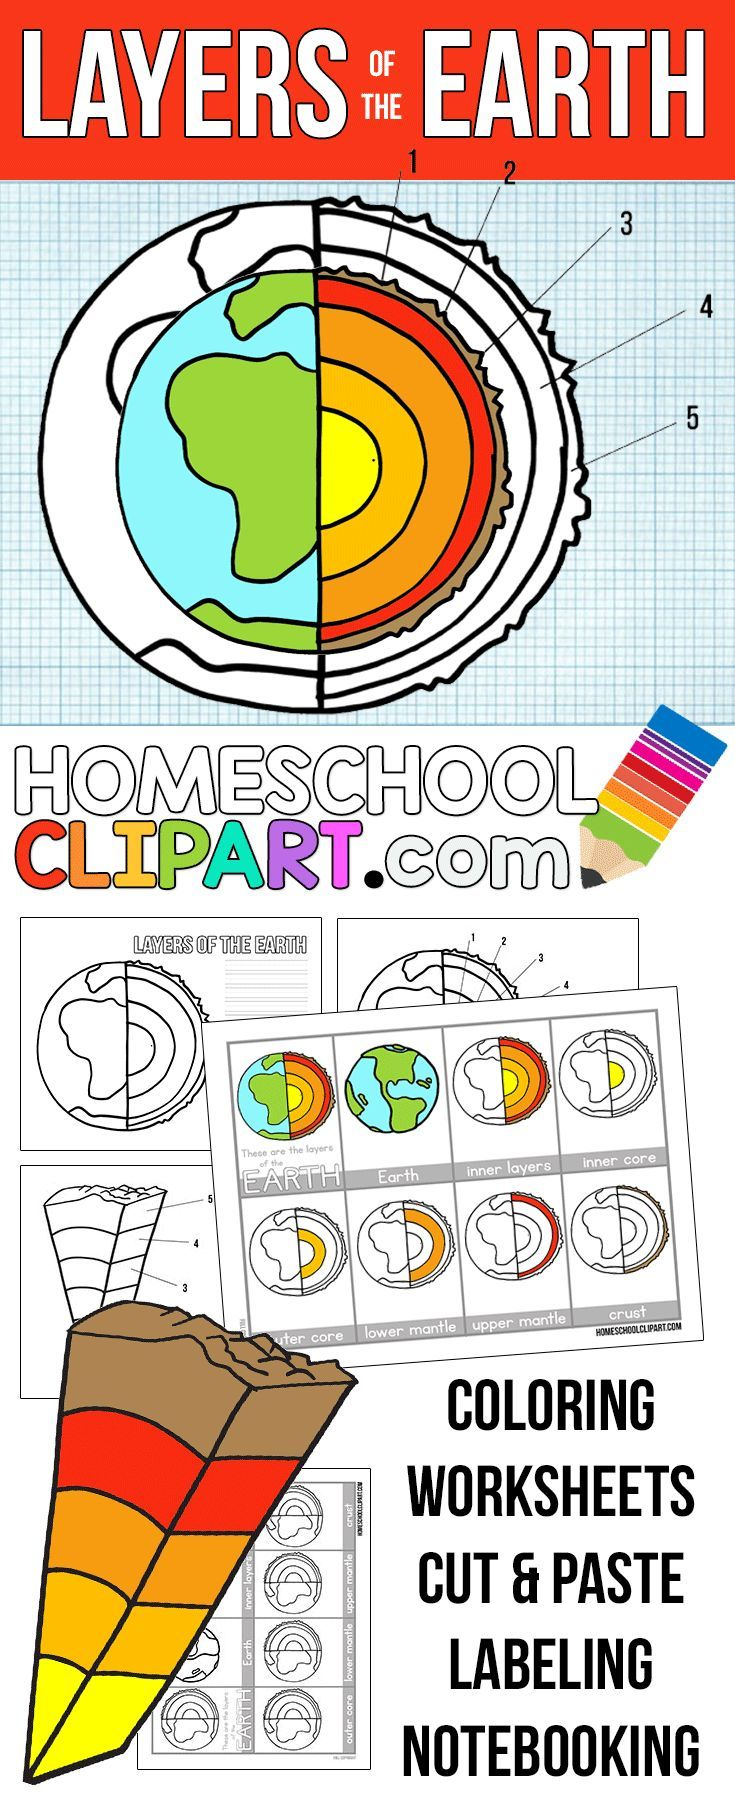 hight resolution of notebooking pages science journal nomenclature cards labeling worksheet charts coloring pages even the clipart to make your own resources